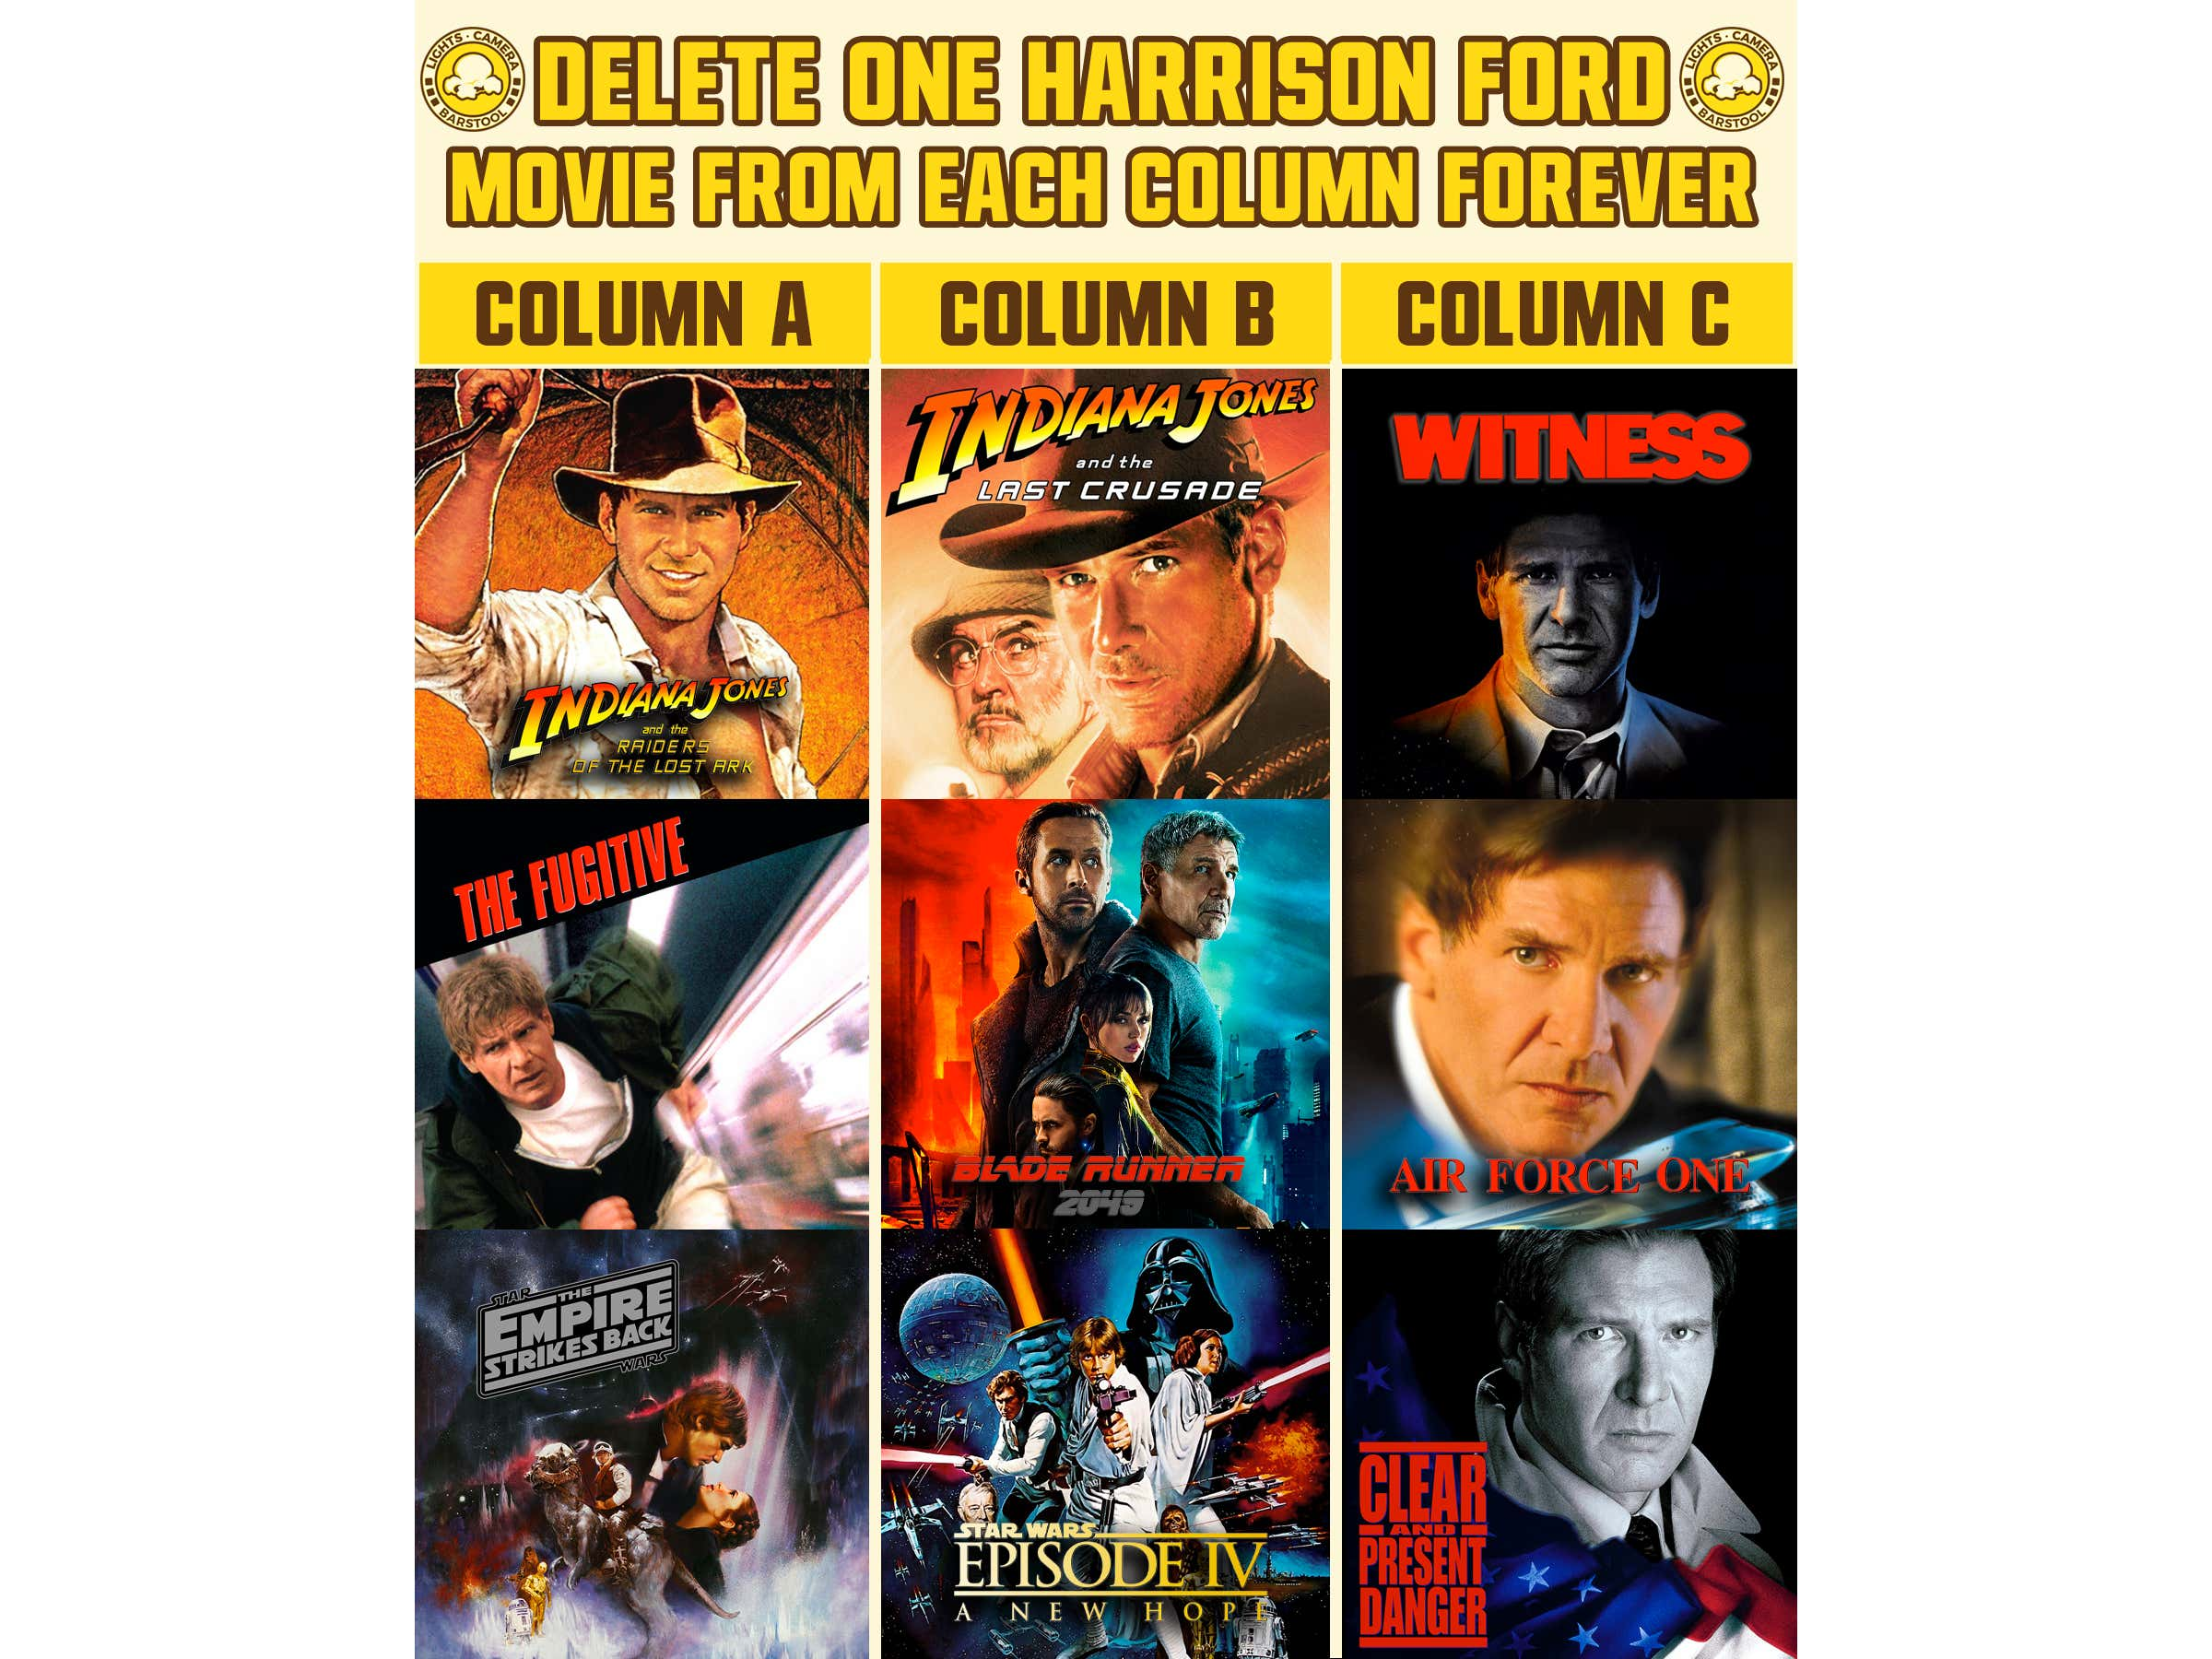 Harrison ford movies with sports betting how to send and receive bitcoins news